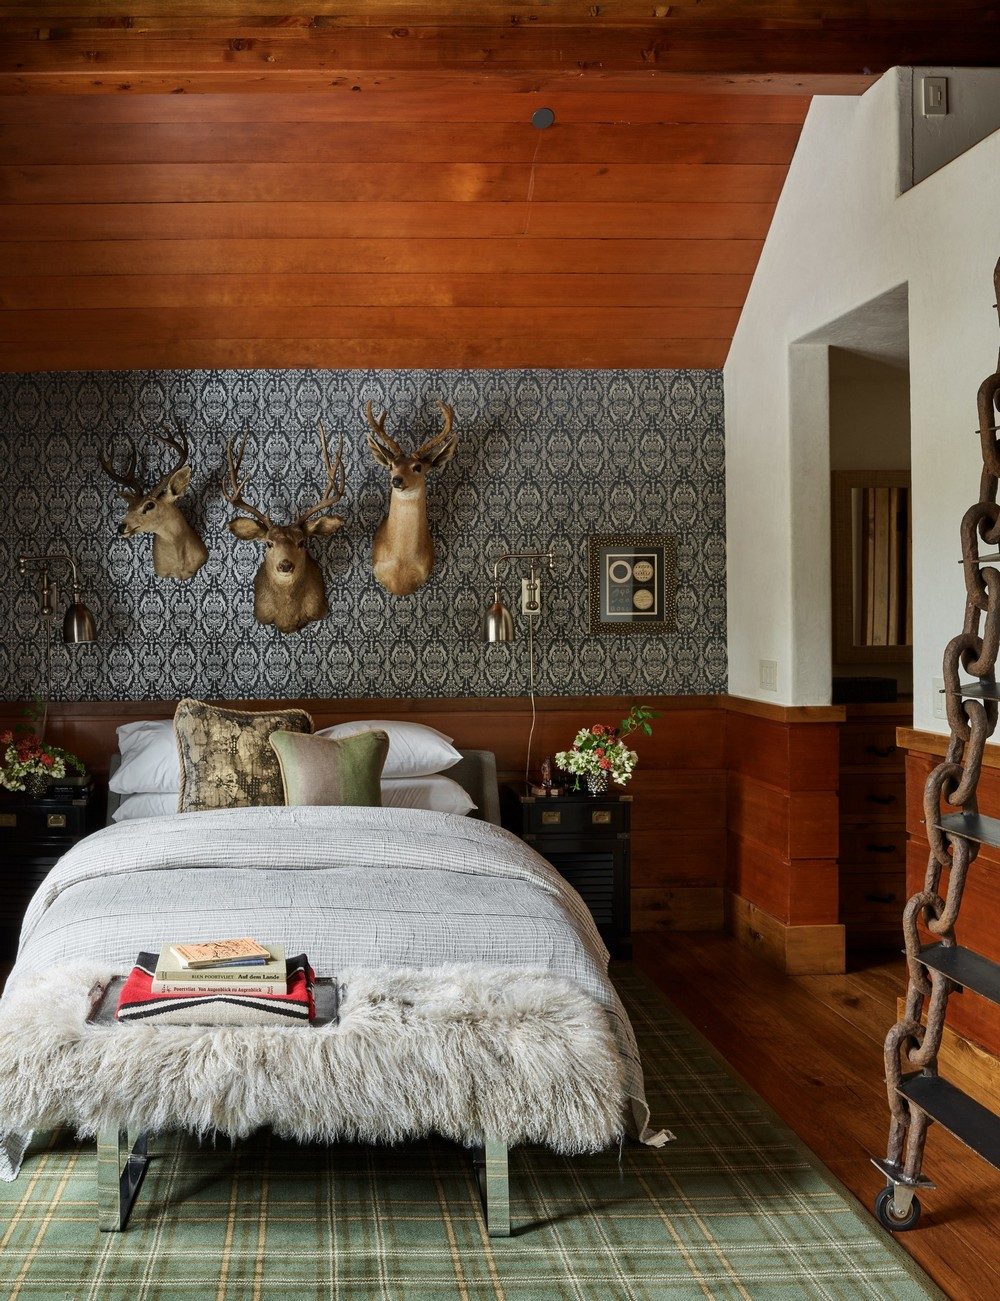 Architectural Digest Shows The Home Of Instagram Founder Kevin Systrom architectural digest Architectural Digest Shows The Home Of Instagram Founder Kevin Systrom Architectural Digest Shows The Home Of Instagram Founder Kevin Systrom 5